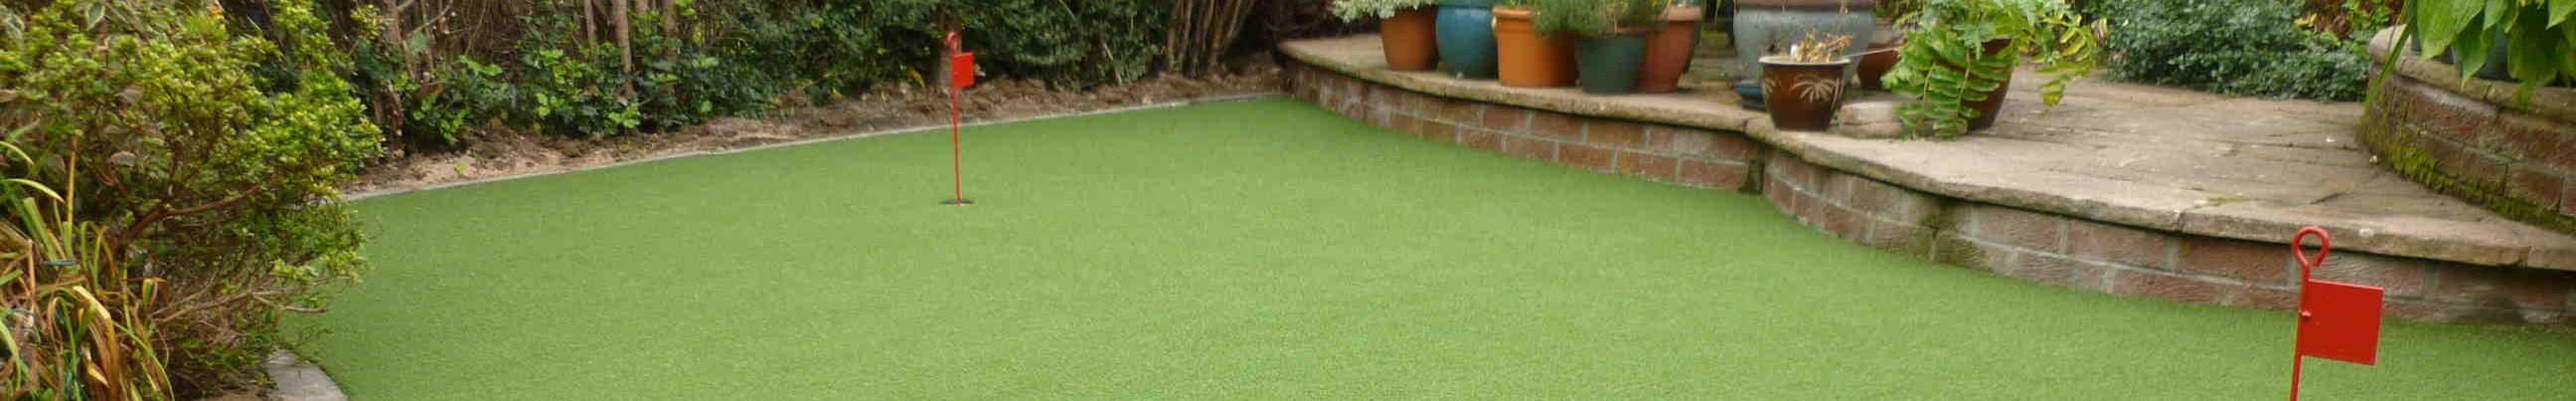 lawn turf artificial grass install